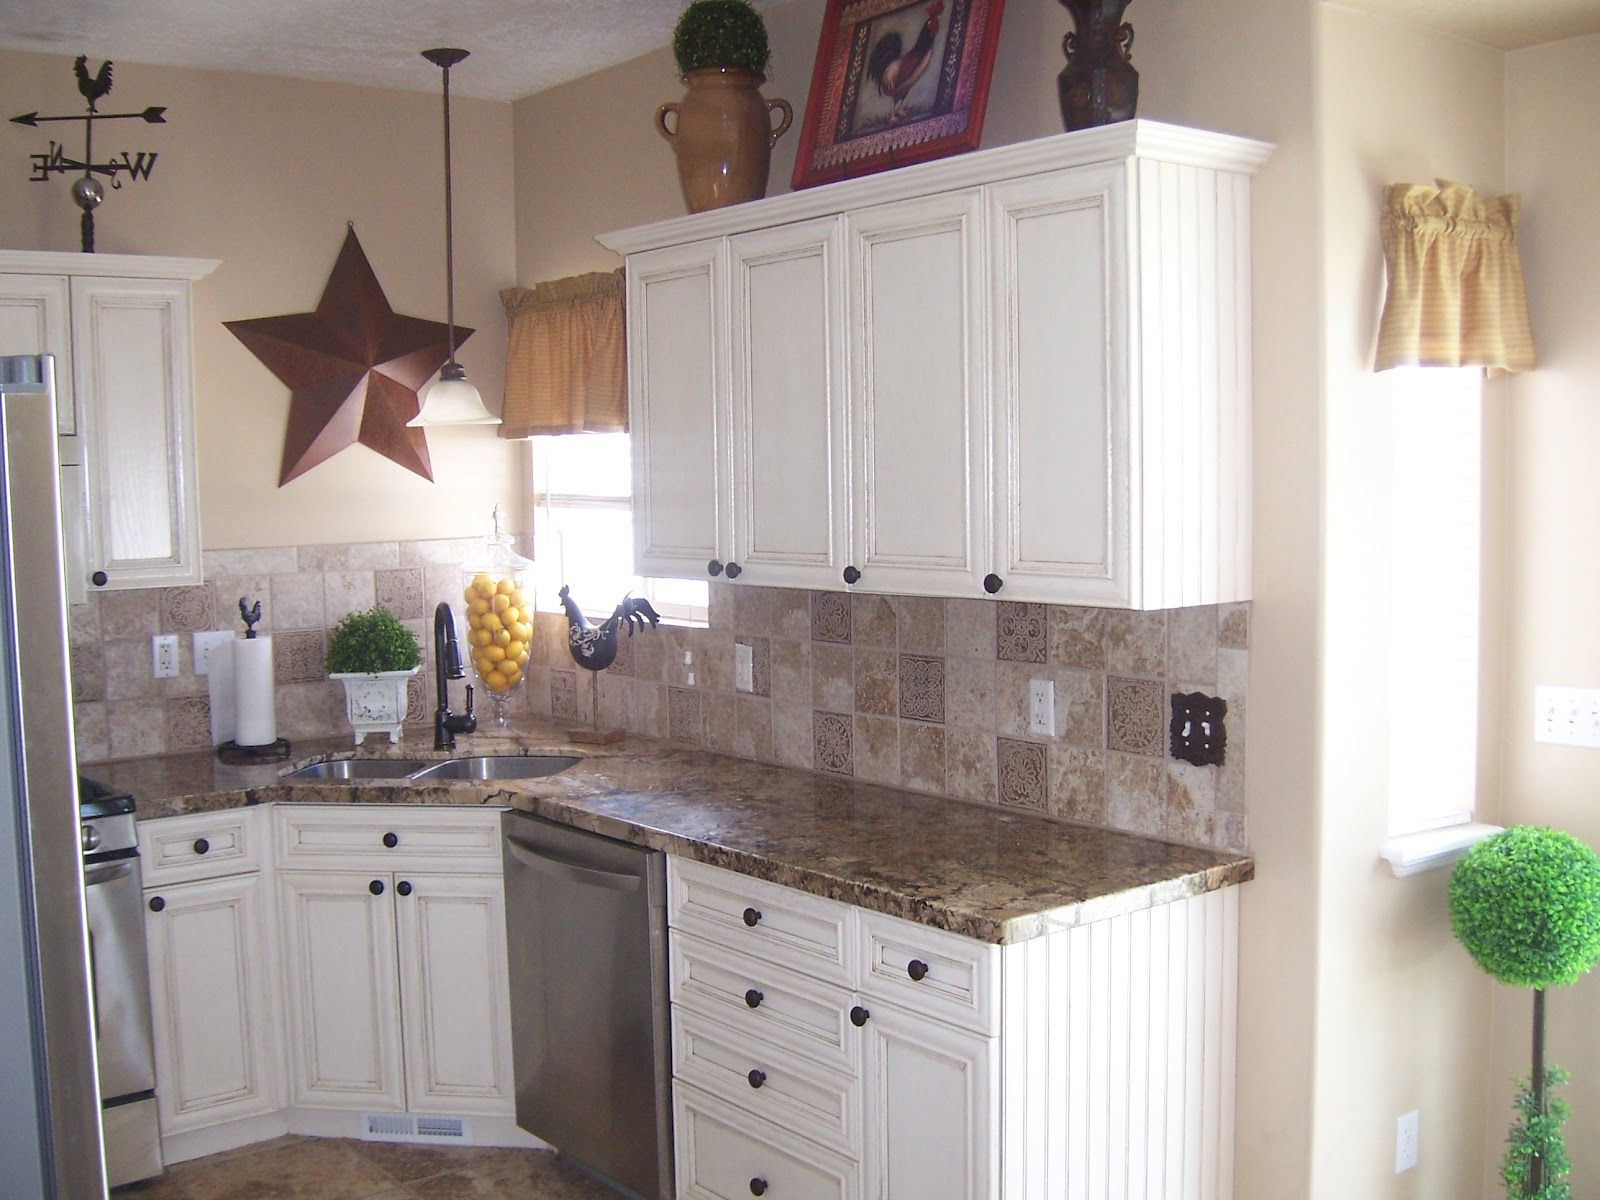 kitchen cabinets and countertops white cabinets with laminate countertops Laminate counter tops were replaced with a beautiful granite